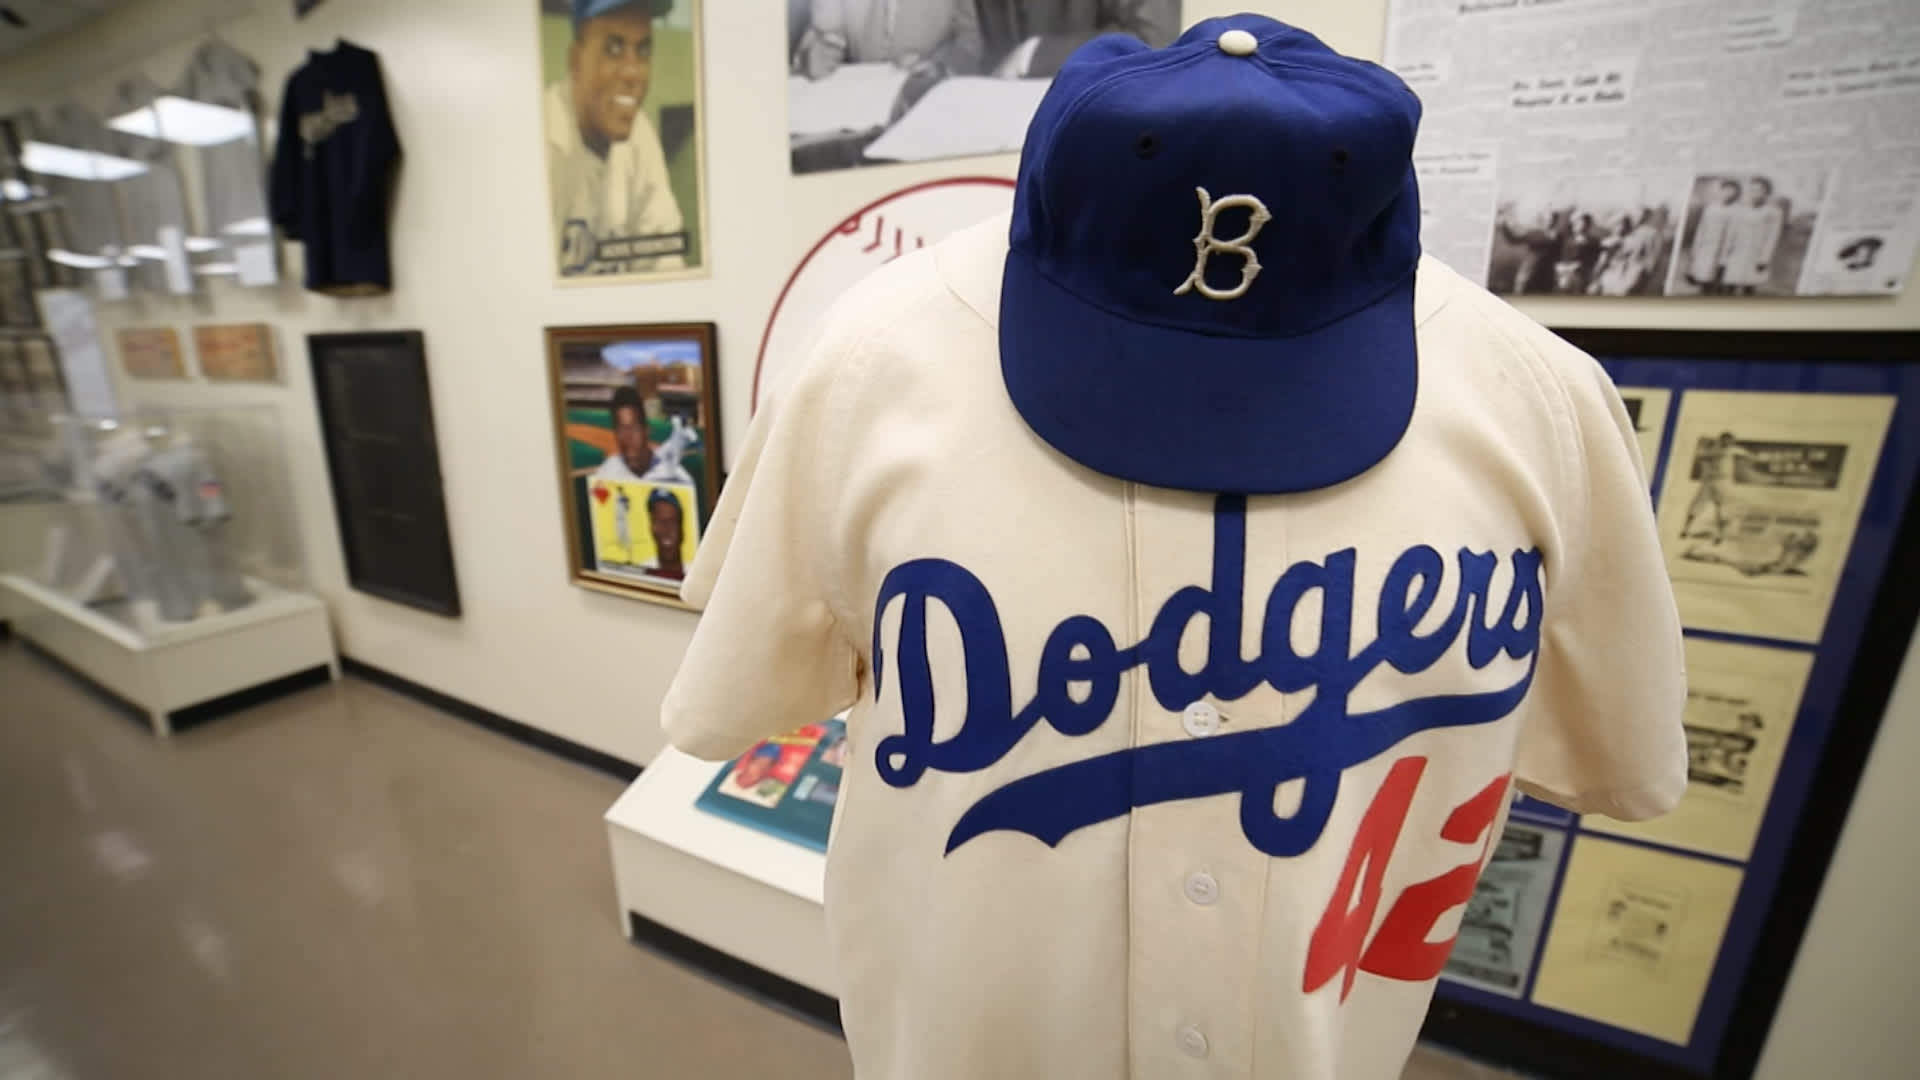 newest 8a5b1 6f4d0 See Dodgers fan's rare baseball memorabilia collection